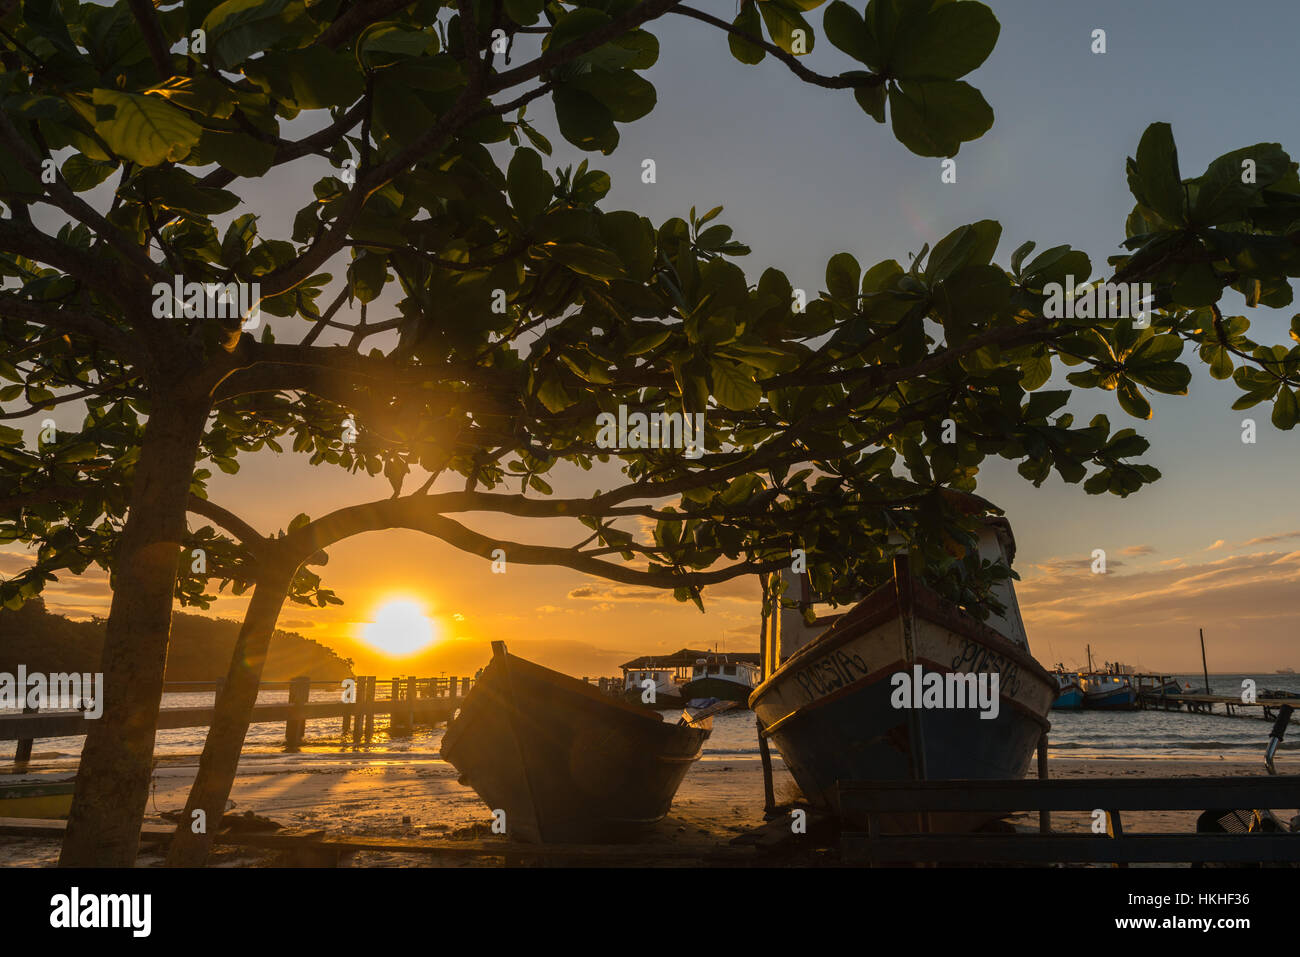 Sunset at the beach of the village Encantadas, Ilha do Mel, Honey Island, Paraná state, Brazil, South America - Stock Image